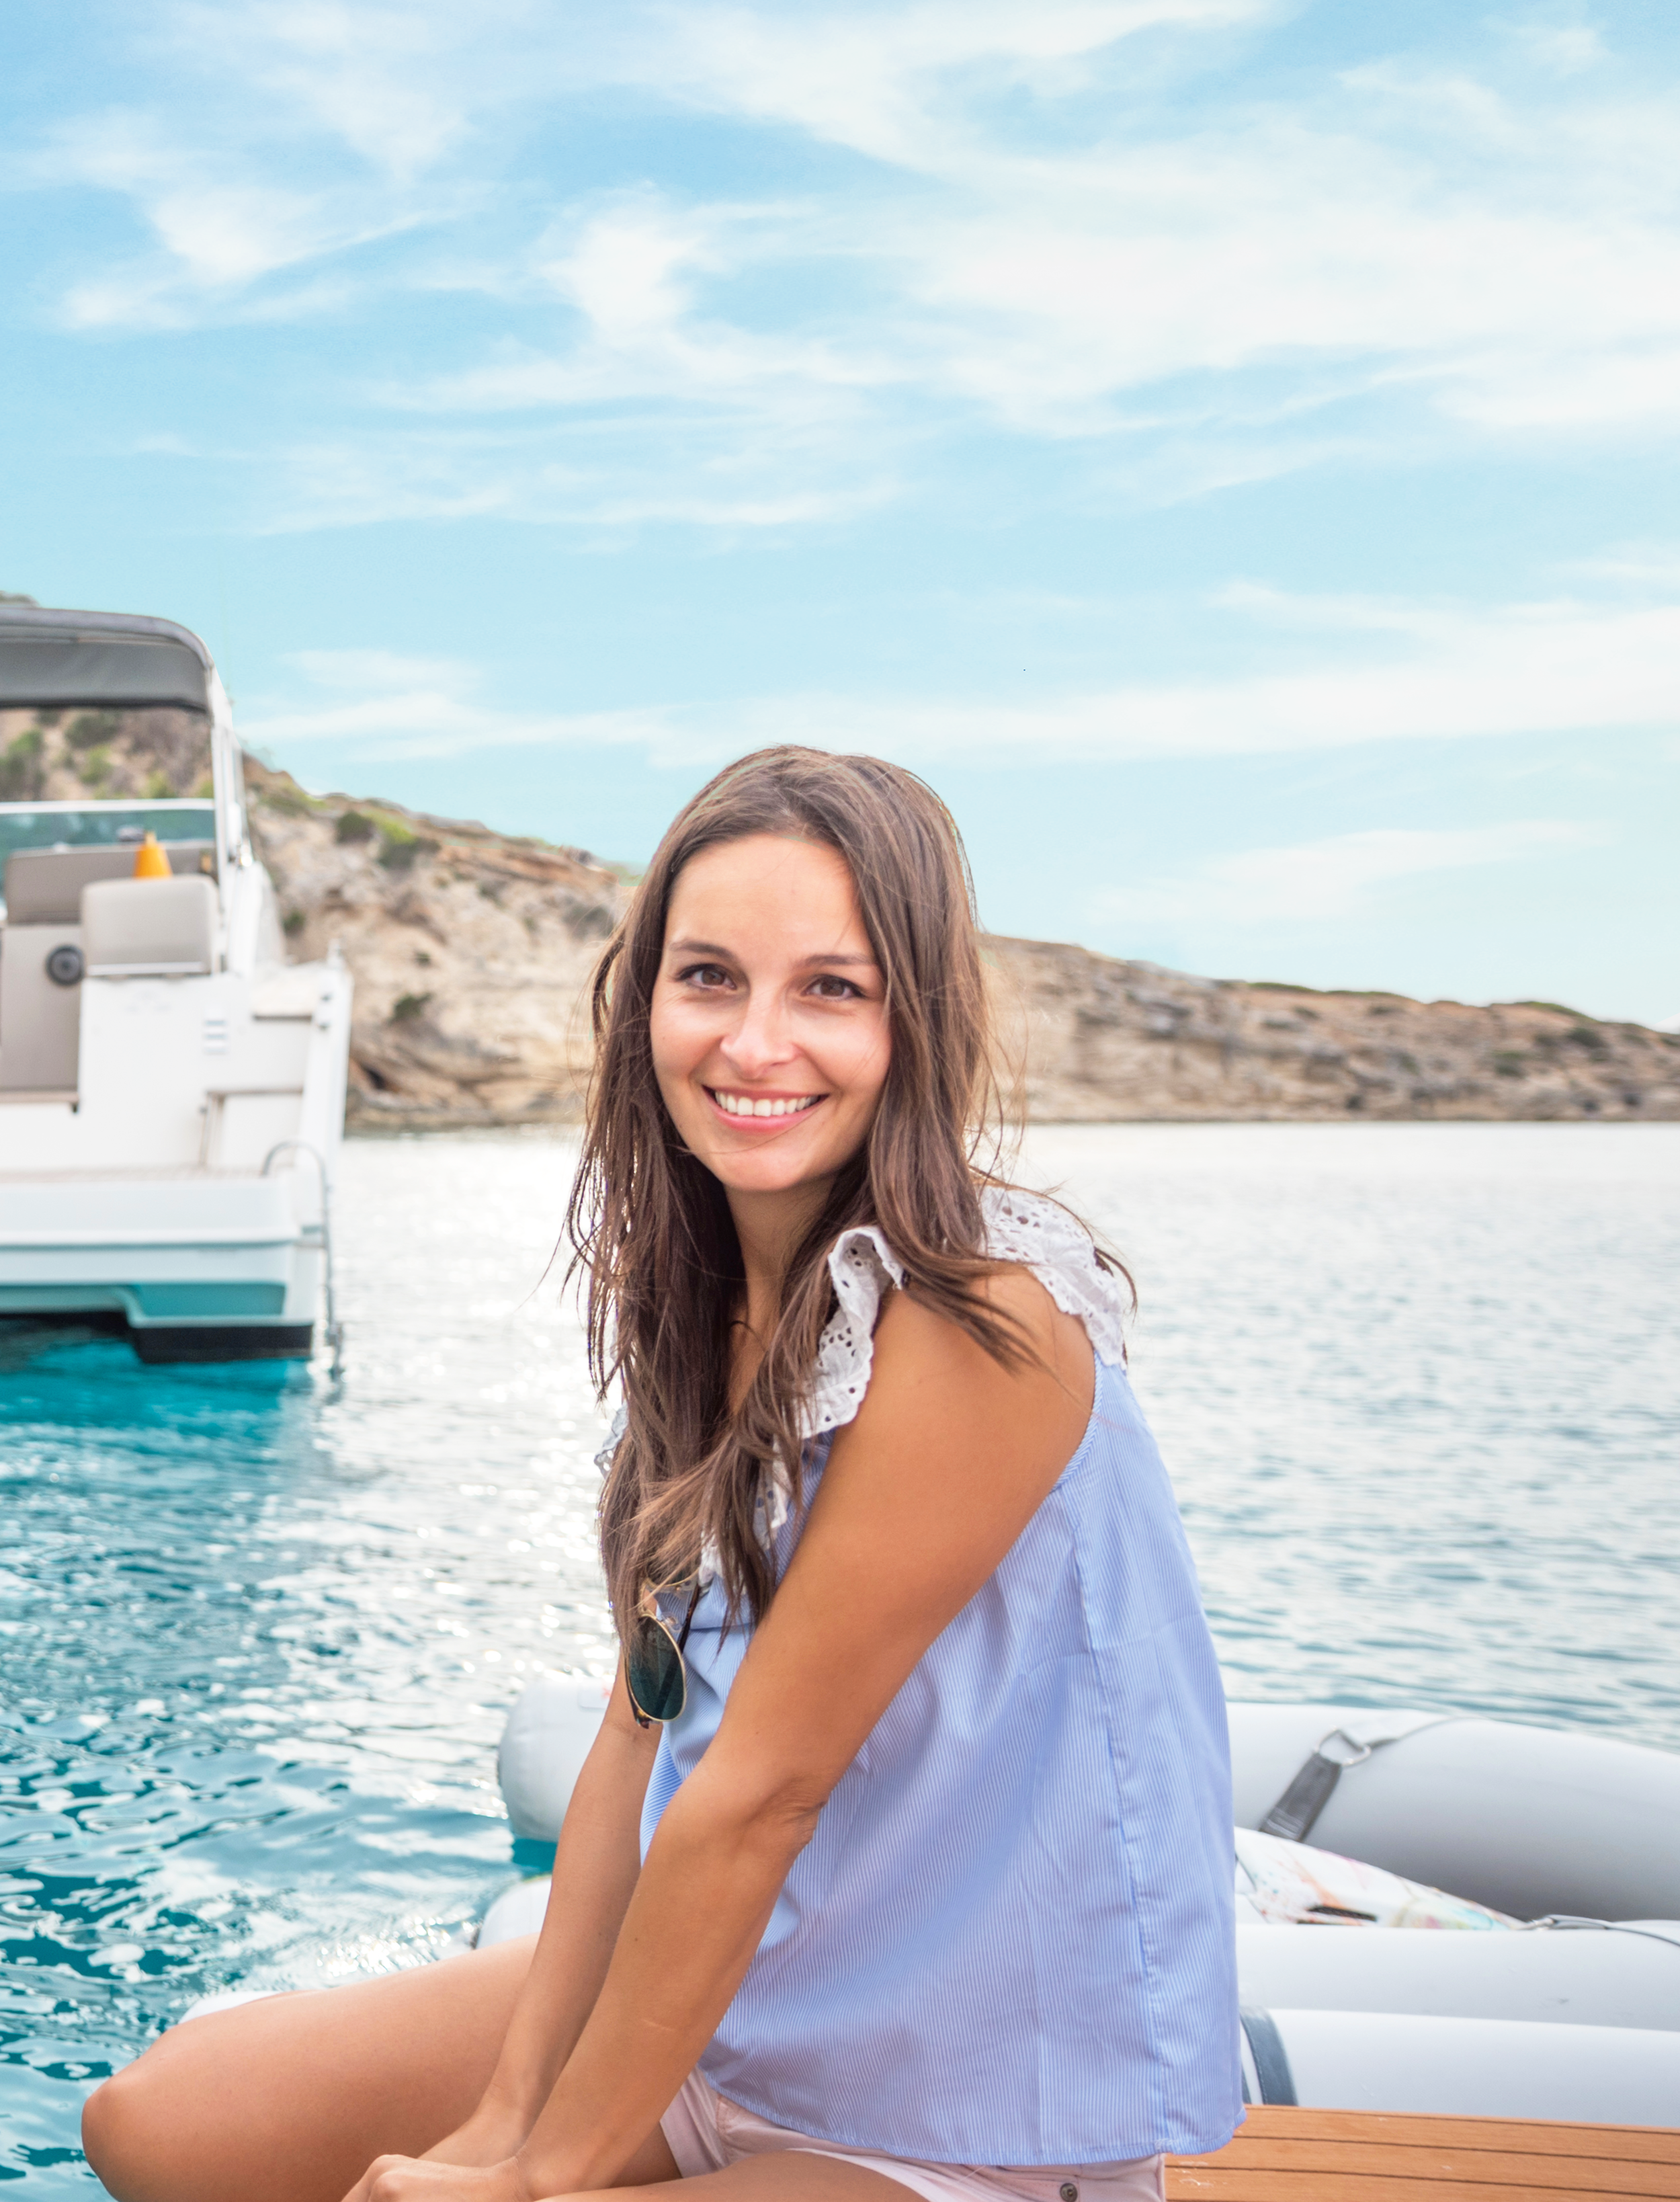 Franziska from S.E. Yachting -